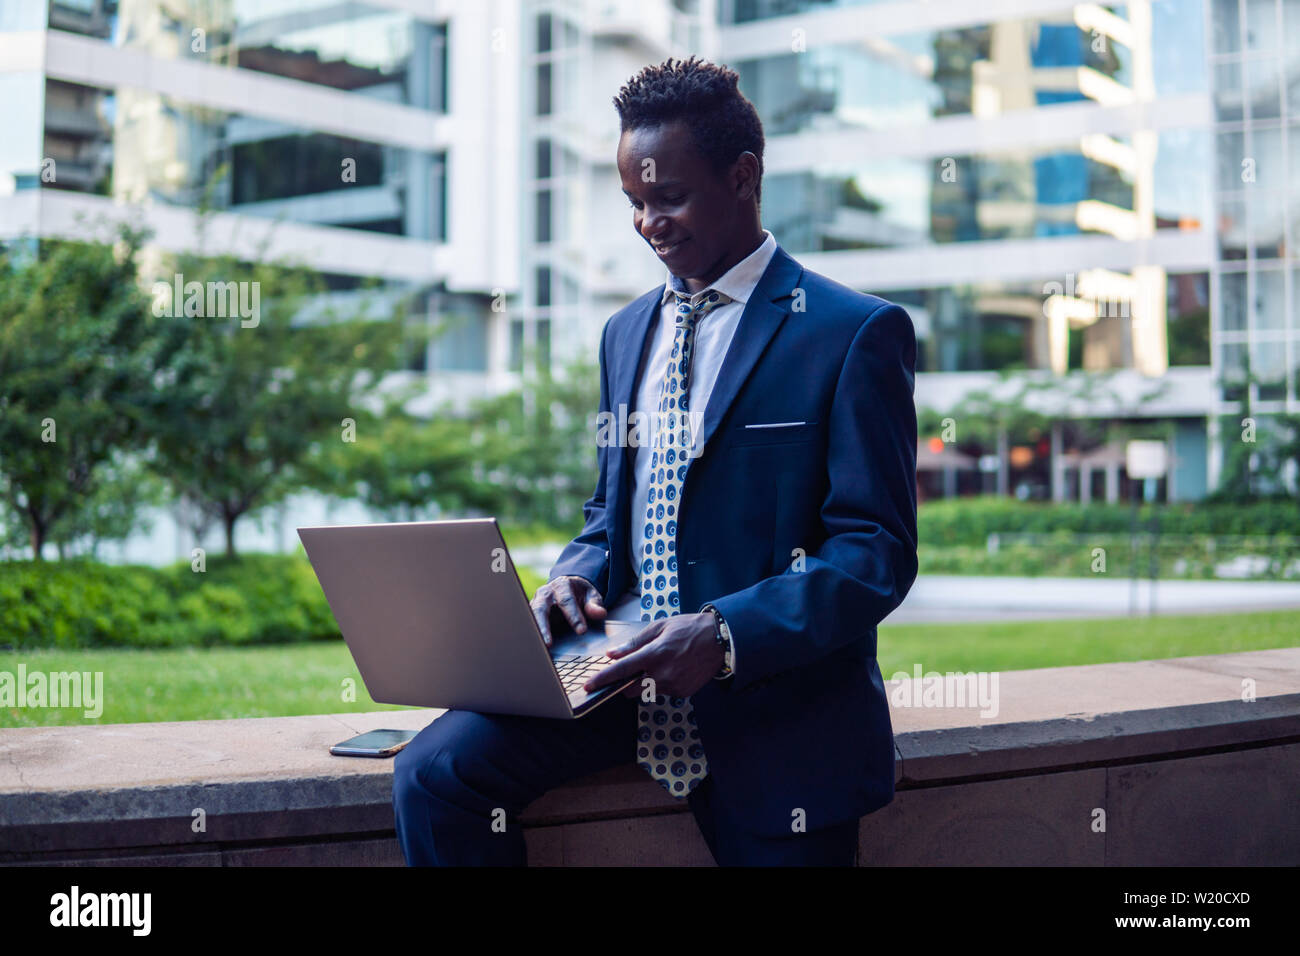 African American businessman holding laptop notebook wearing blue suit Stock Photo